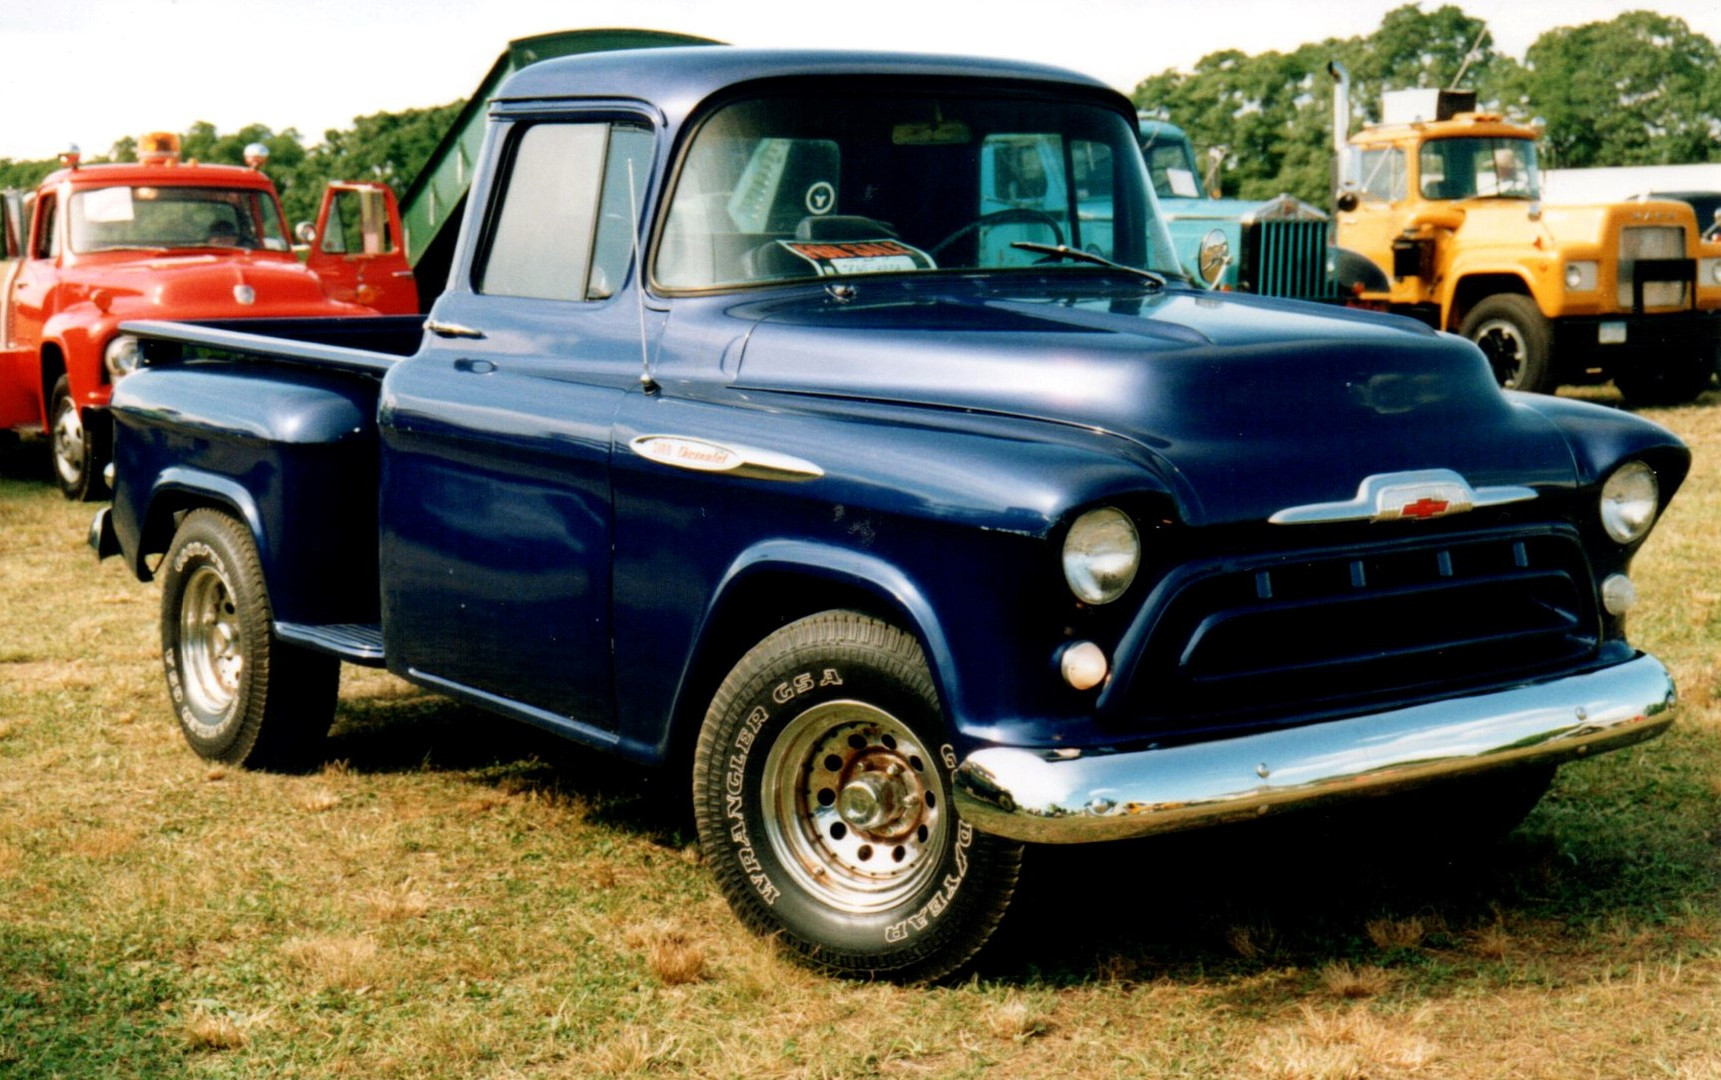 1957 Chevrolet 3100 pickup Robert Mohr